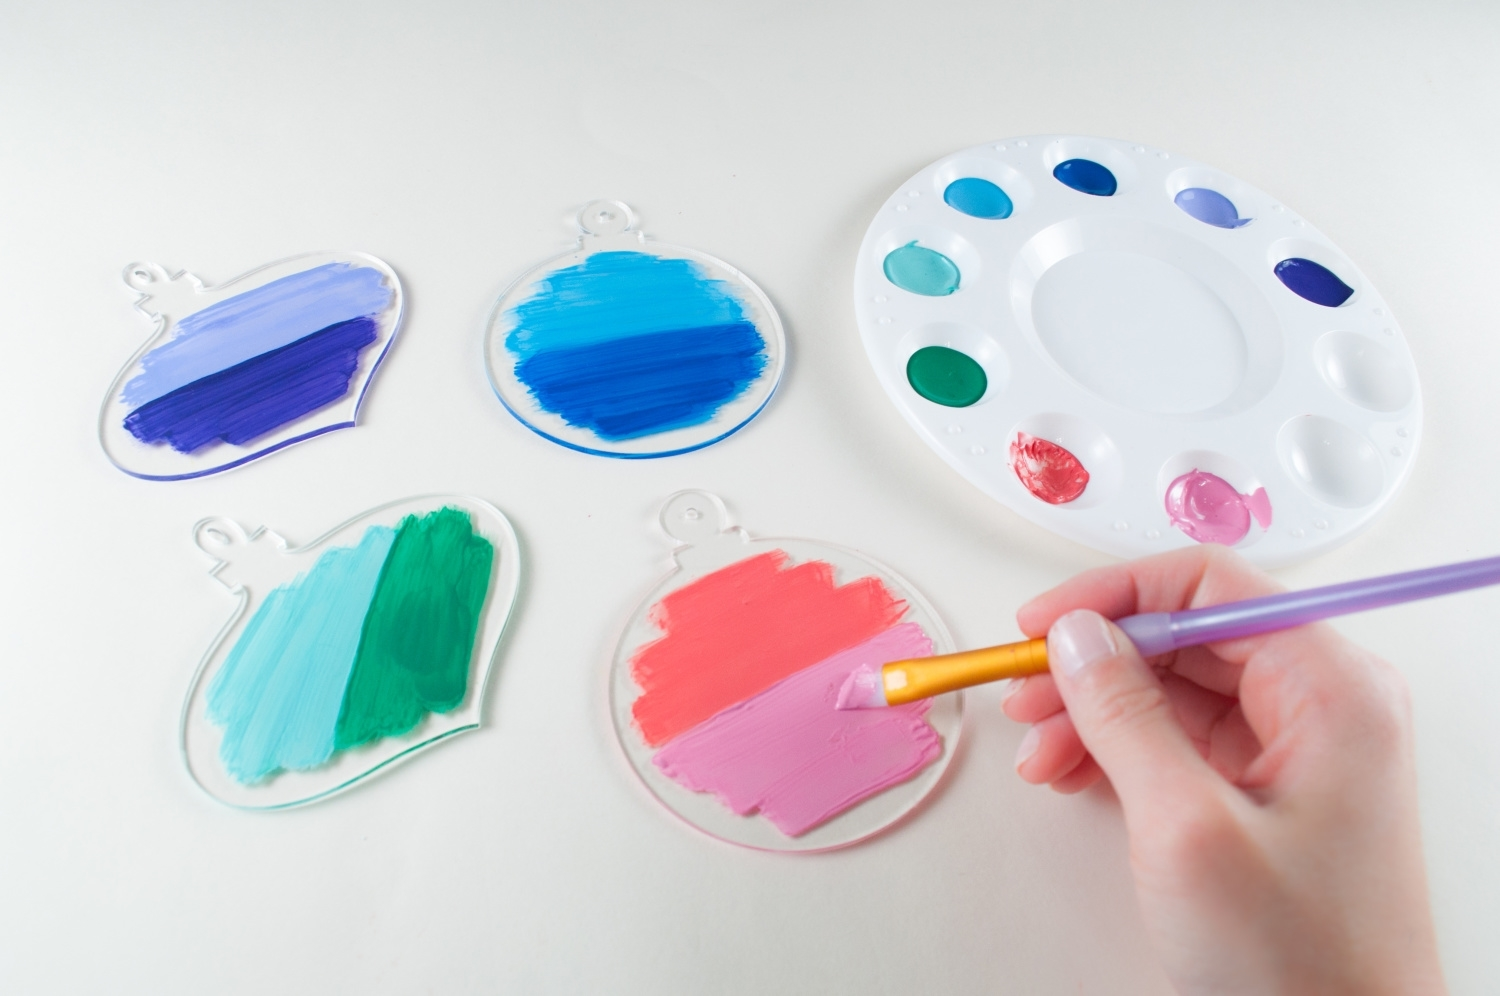 Paint ornaments with acrylic paints